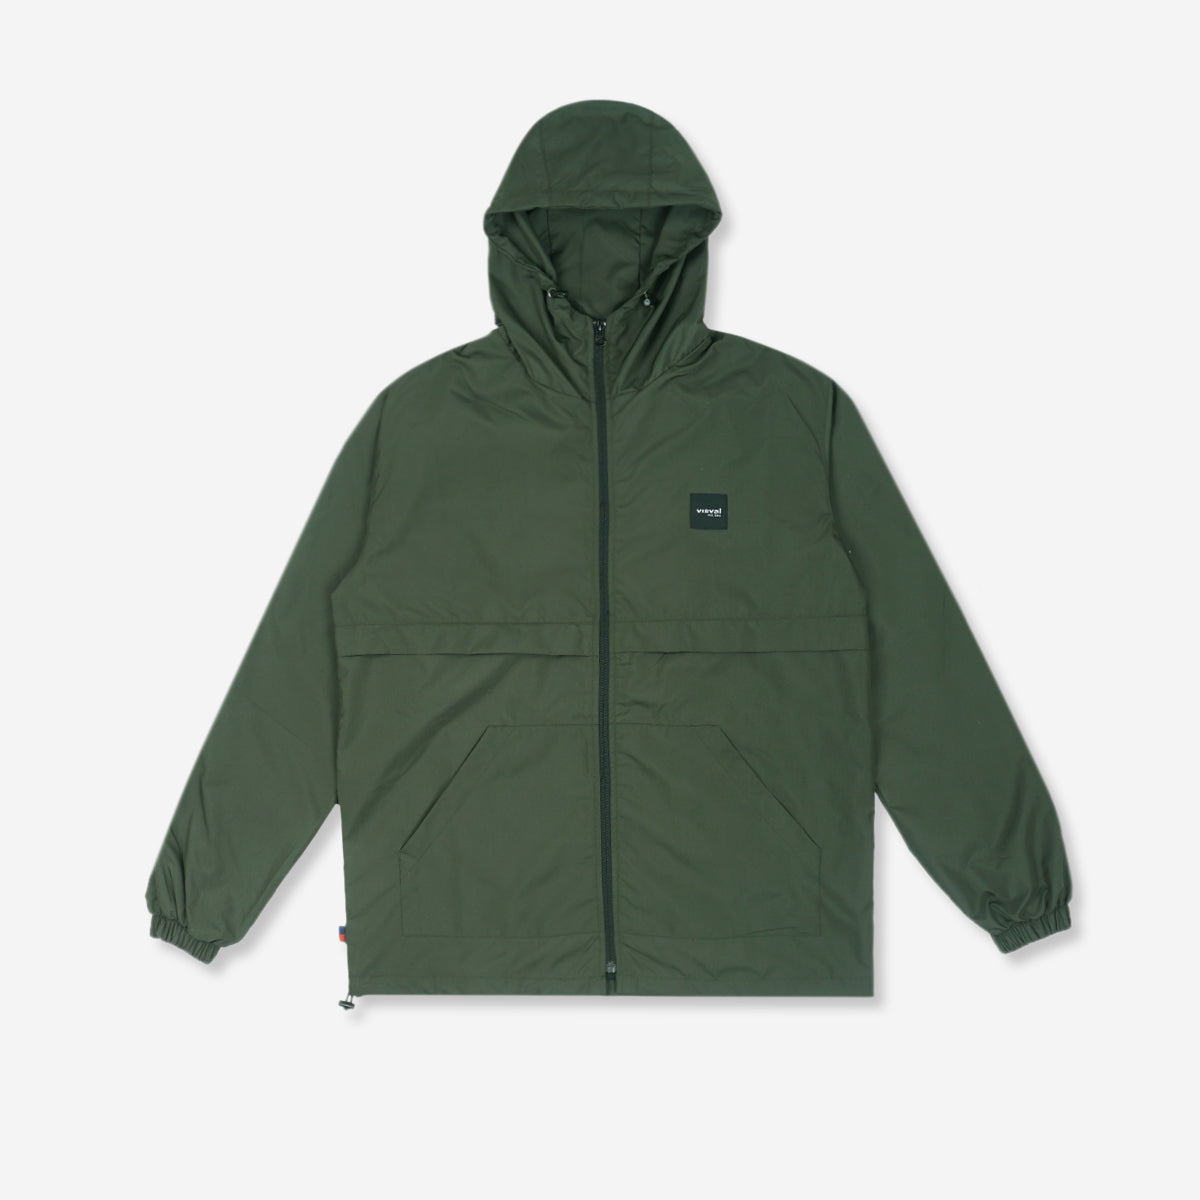 Narco Windbreaker Jacket Olive